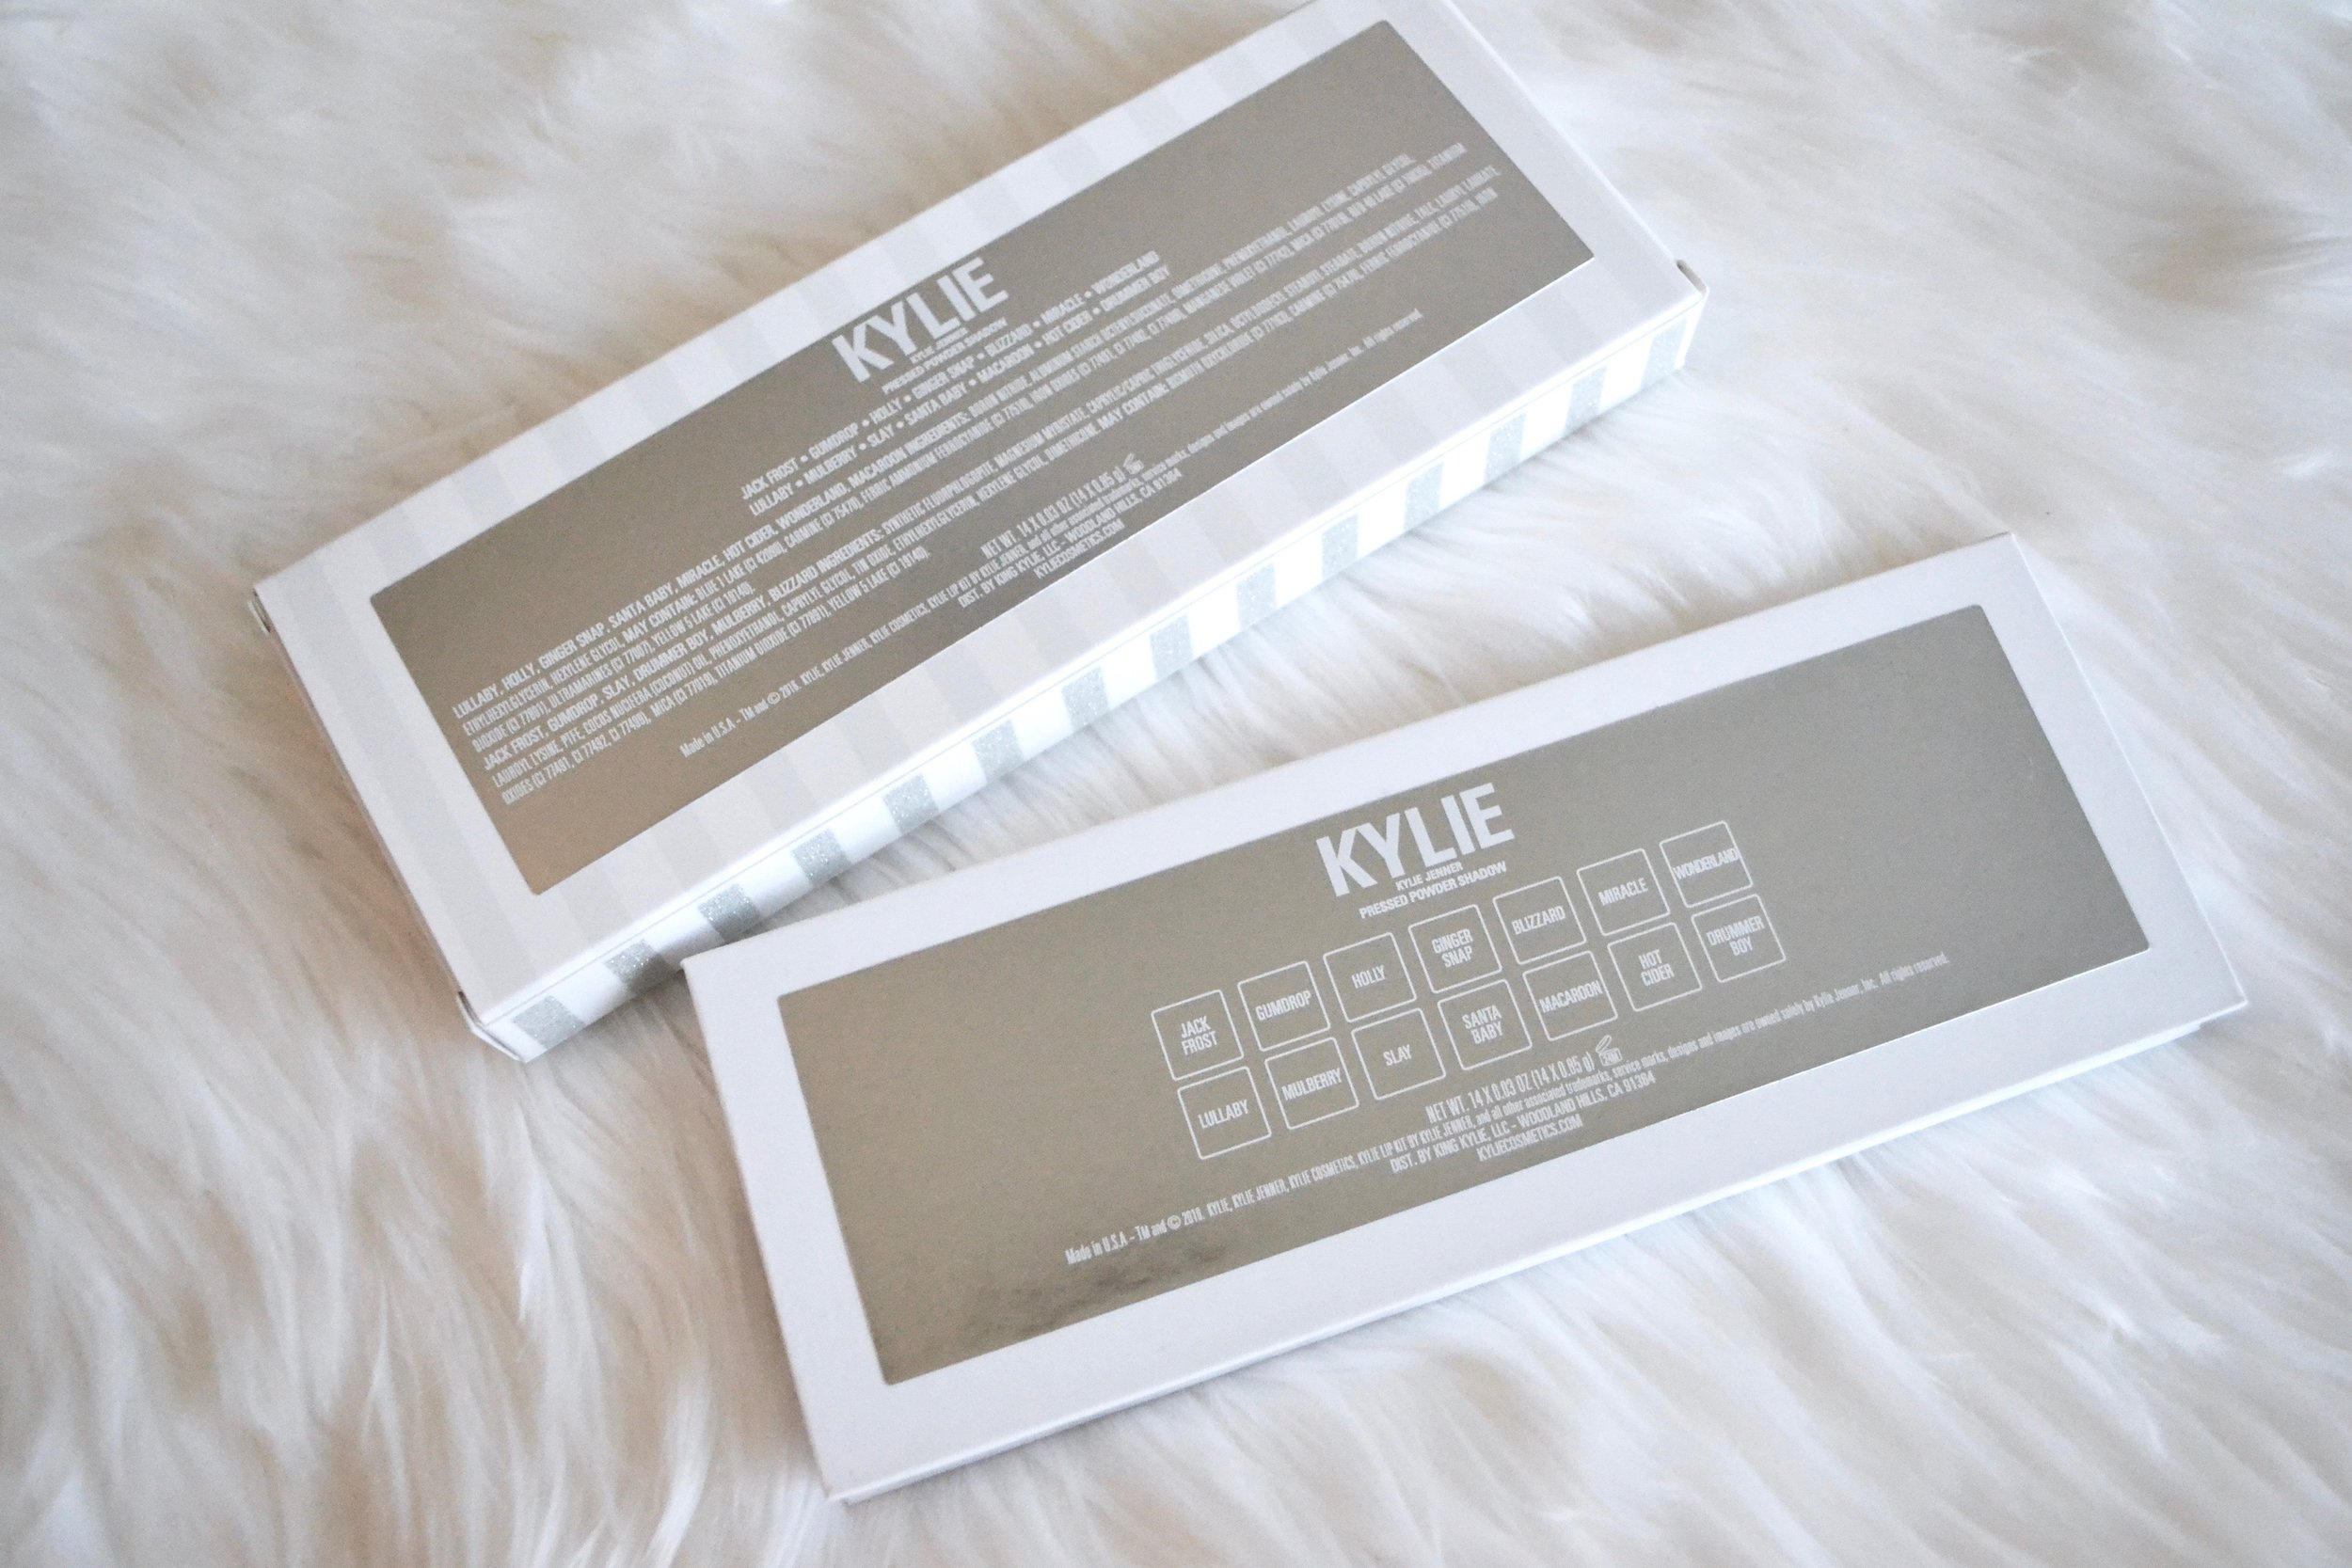 Kylie Cosmetics The Nice Palette Review and Swatches